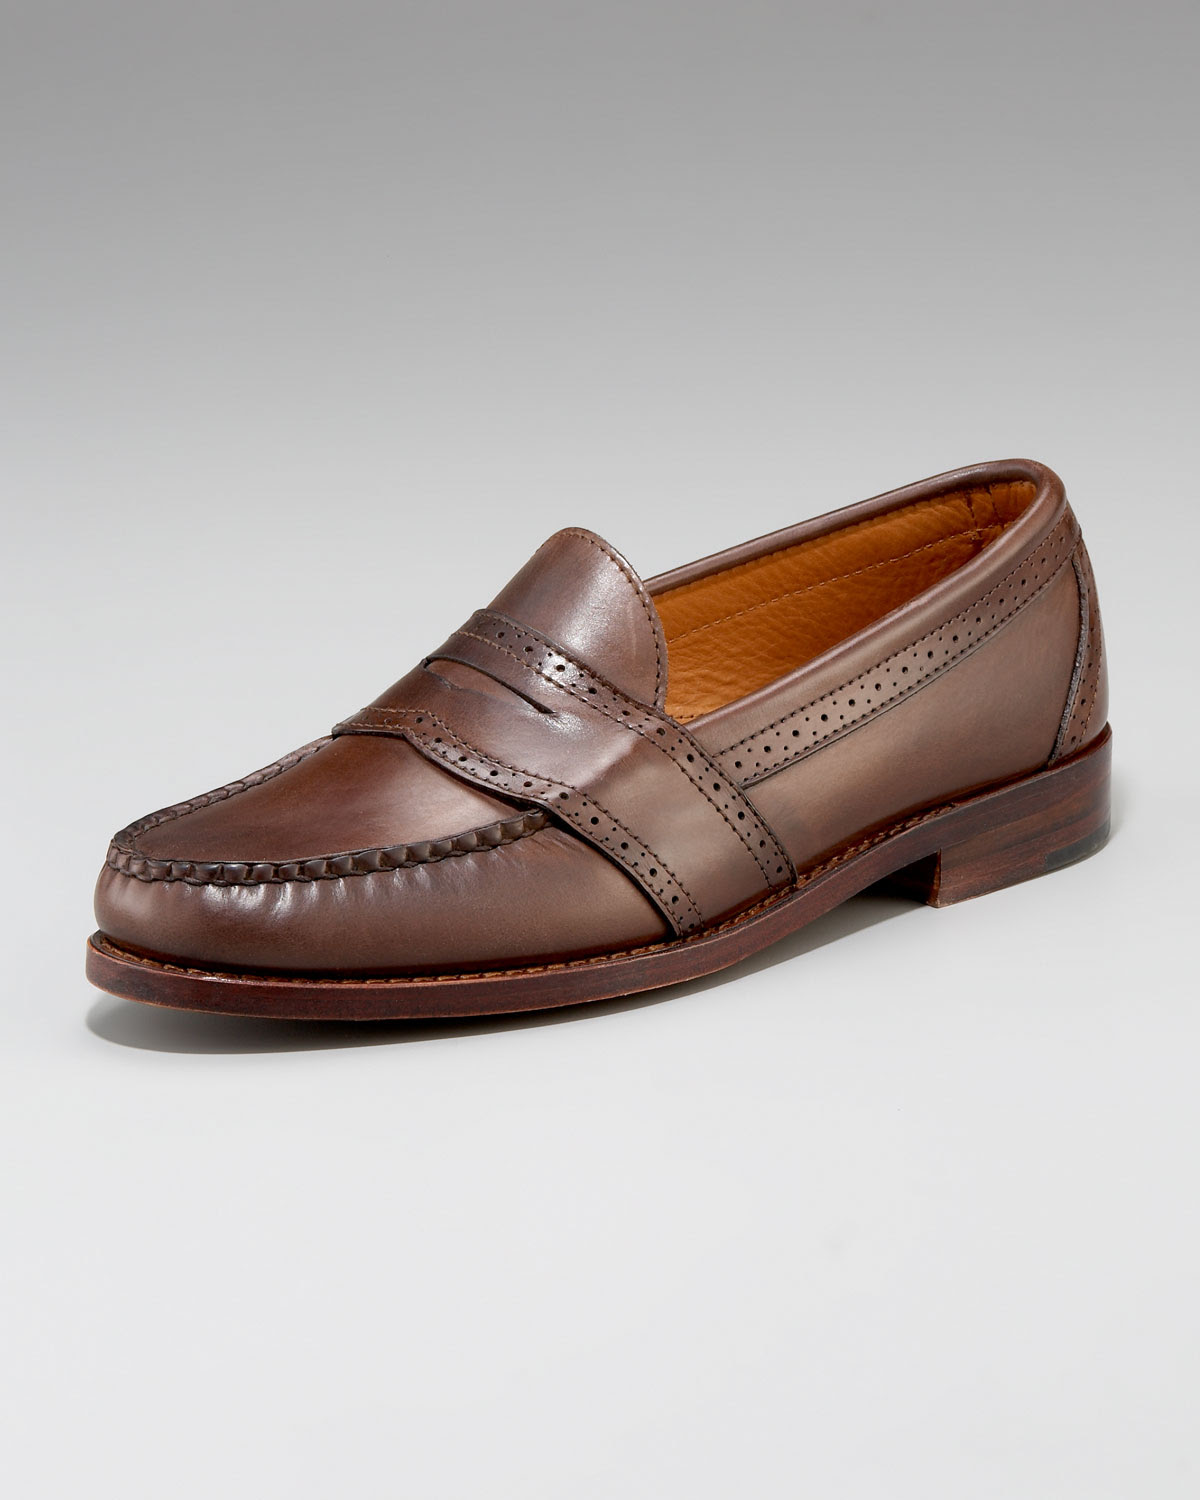 1010+ Penny Loafers Sale Gif